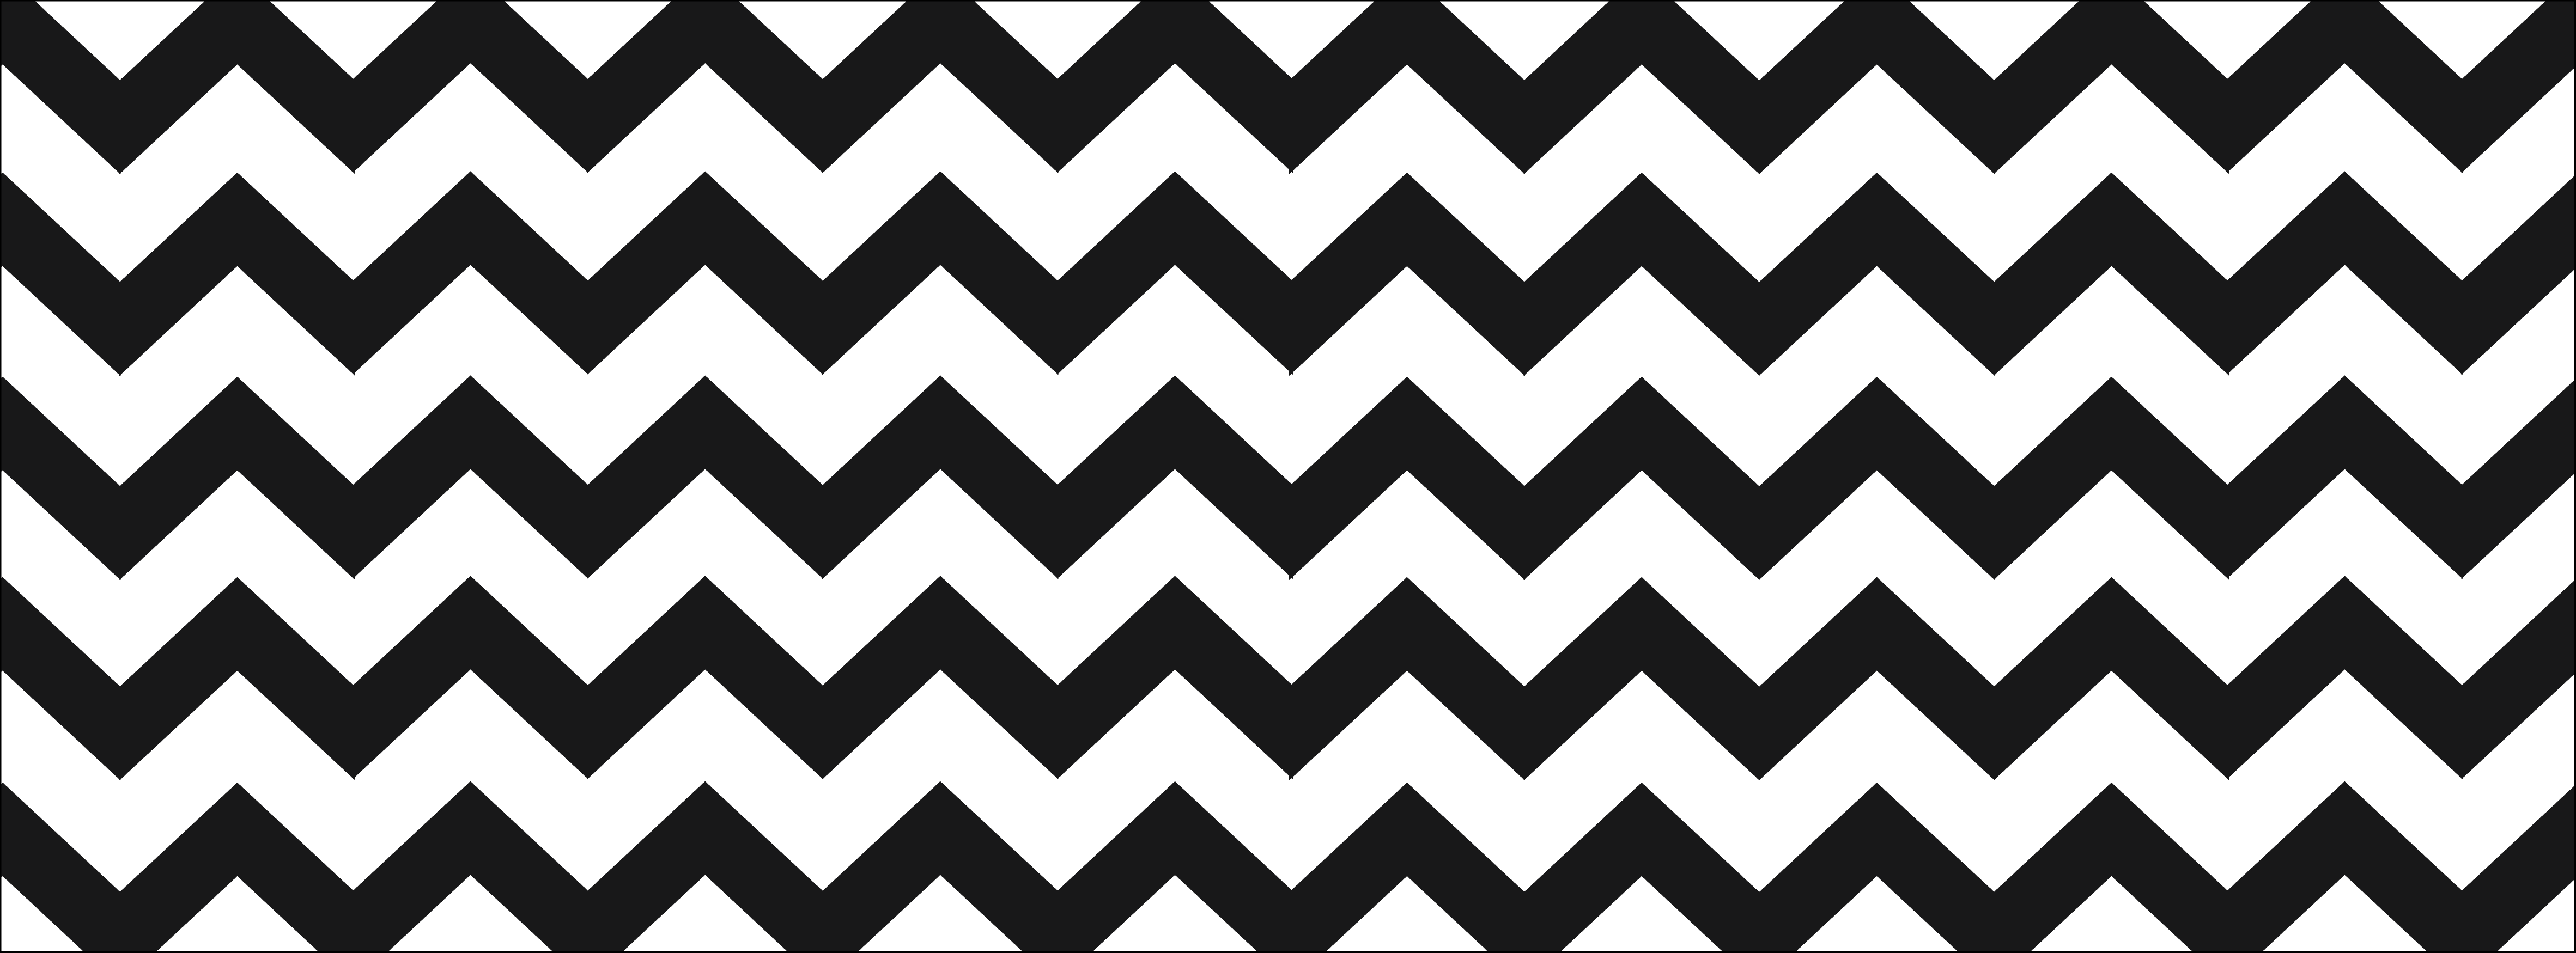 Free White Chevron Cliparts, Download Free Clip Art, Free Clip Art.